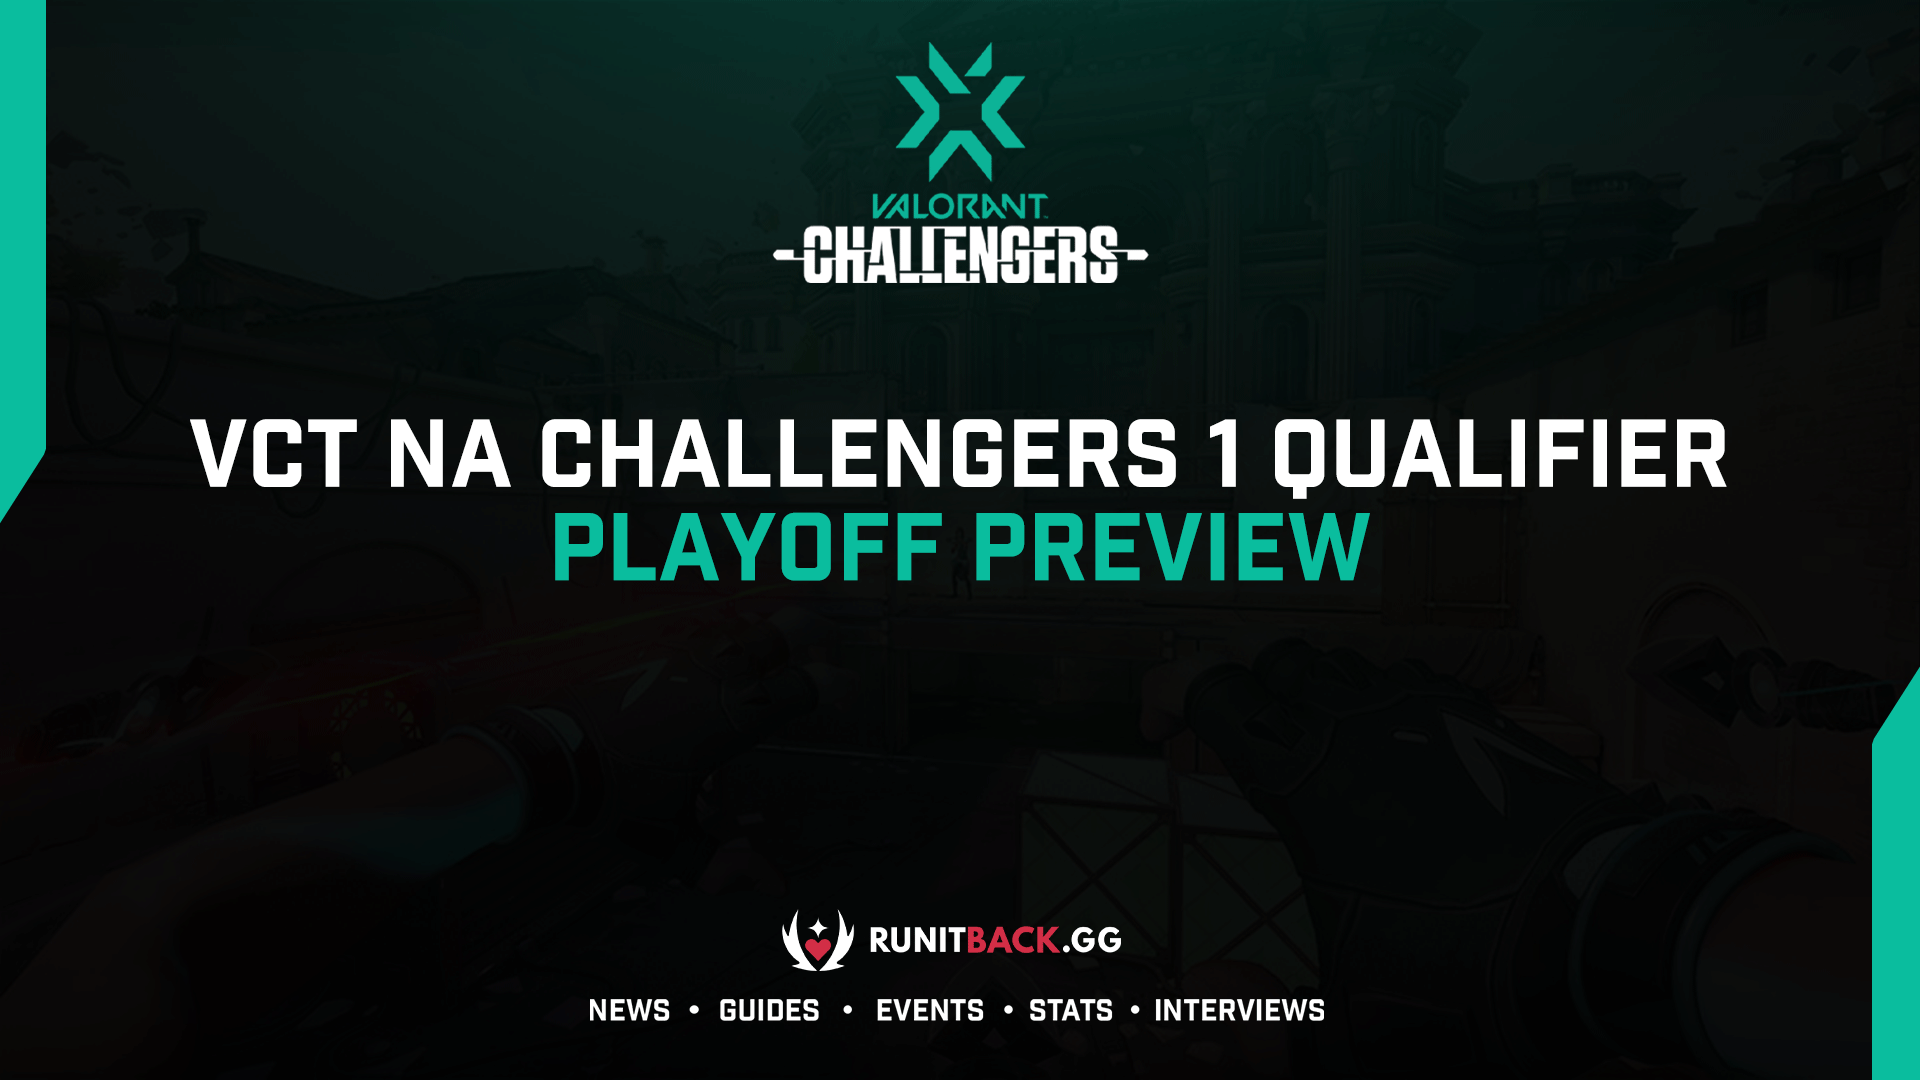 VCT NA Challengers 1 Qualifier: Playoff Preview